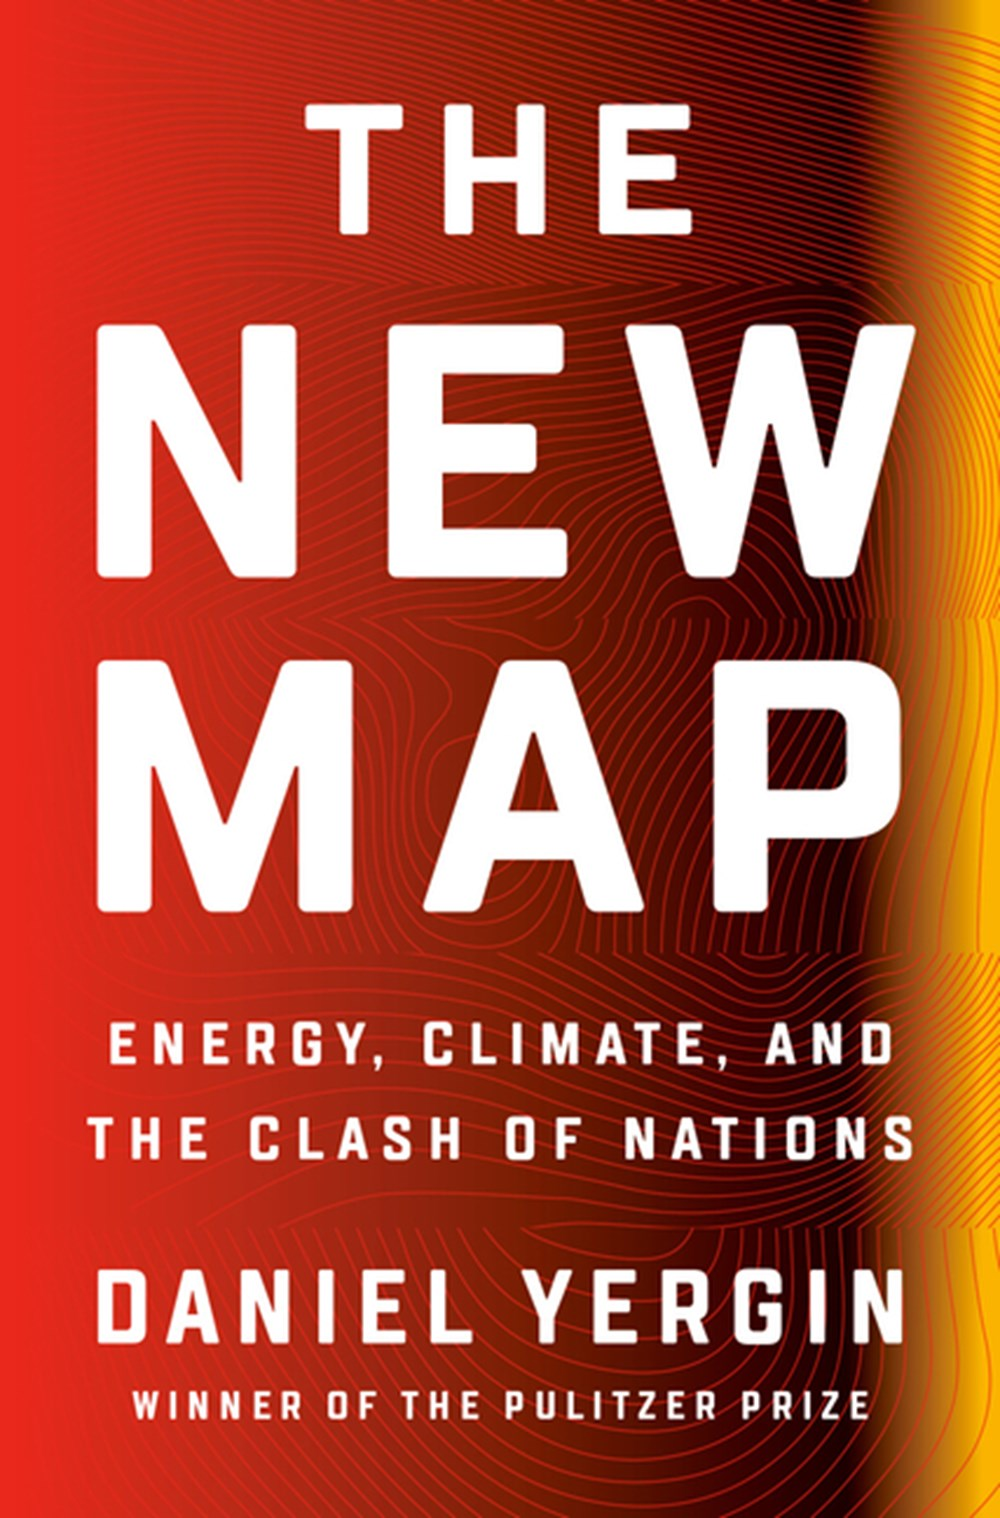 New Map Energy, Climate, and the Clash of Nations